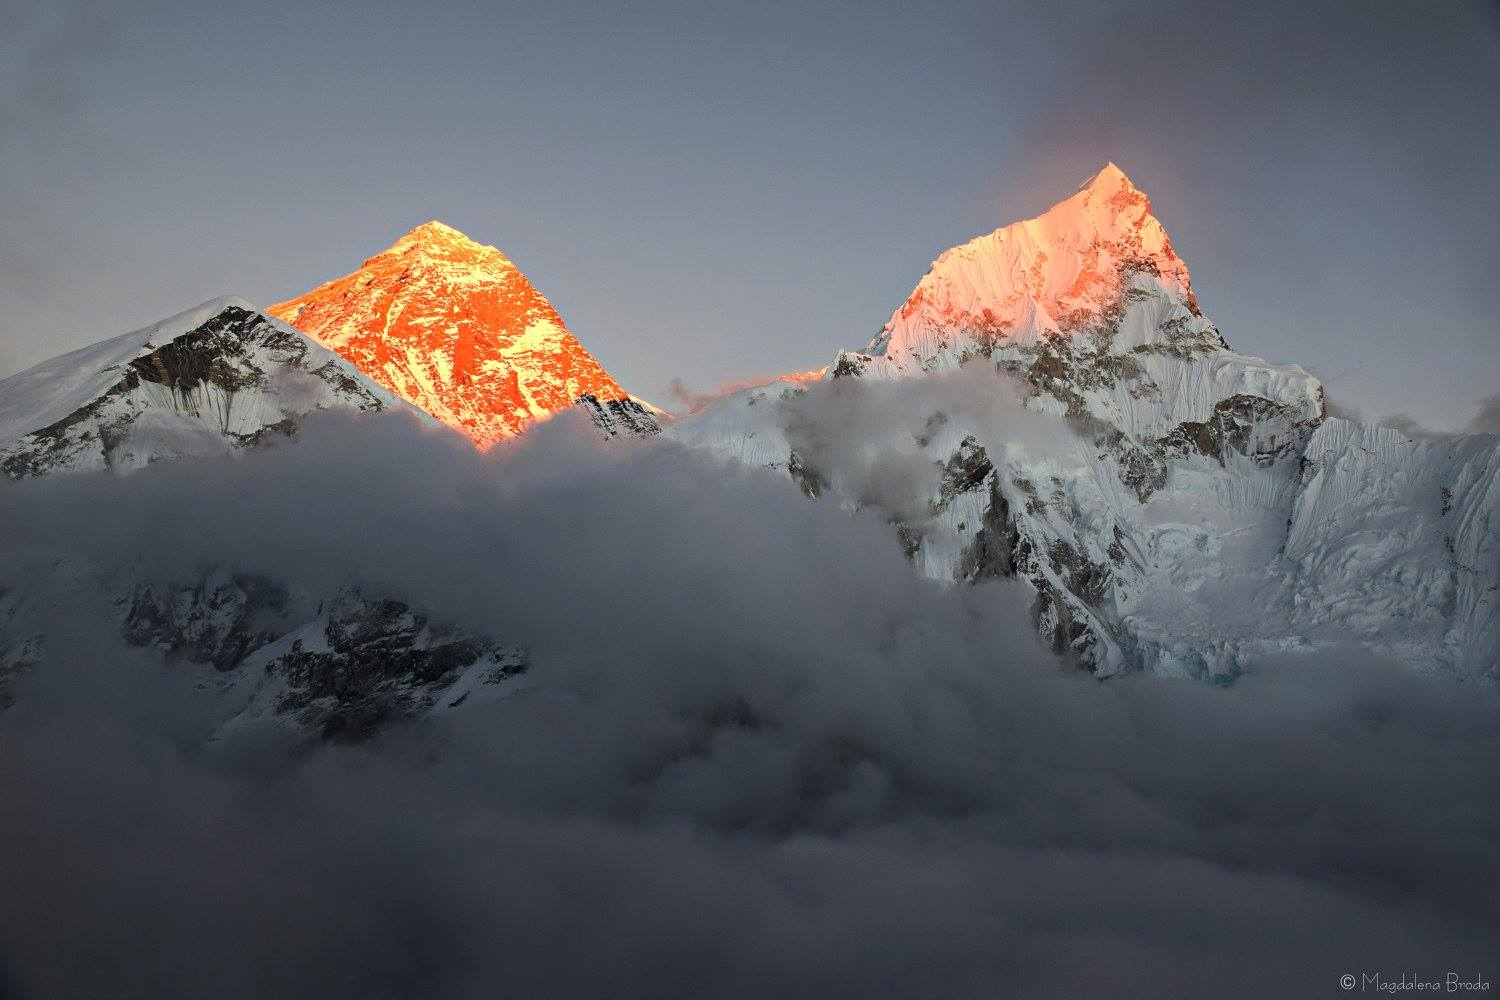 New Height of Mount Everest Announced